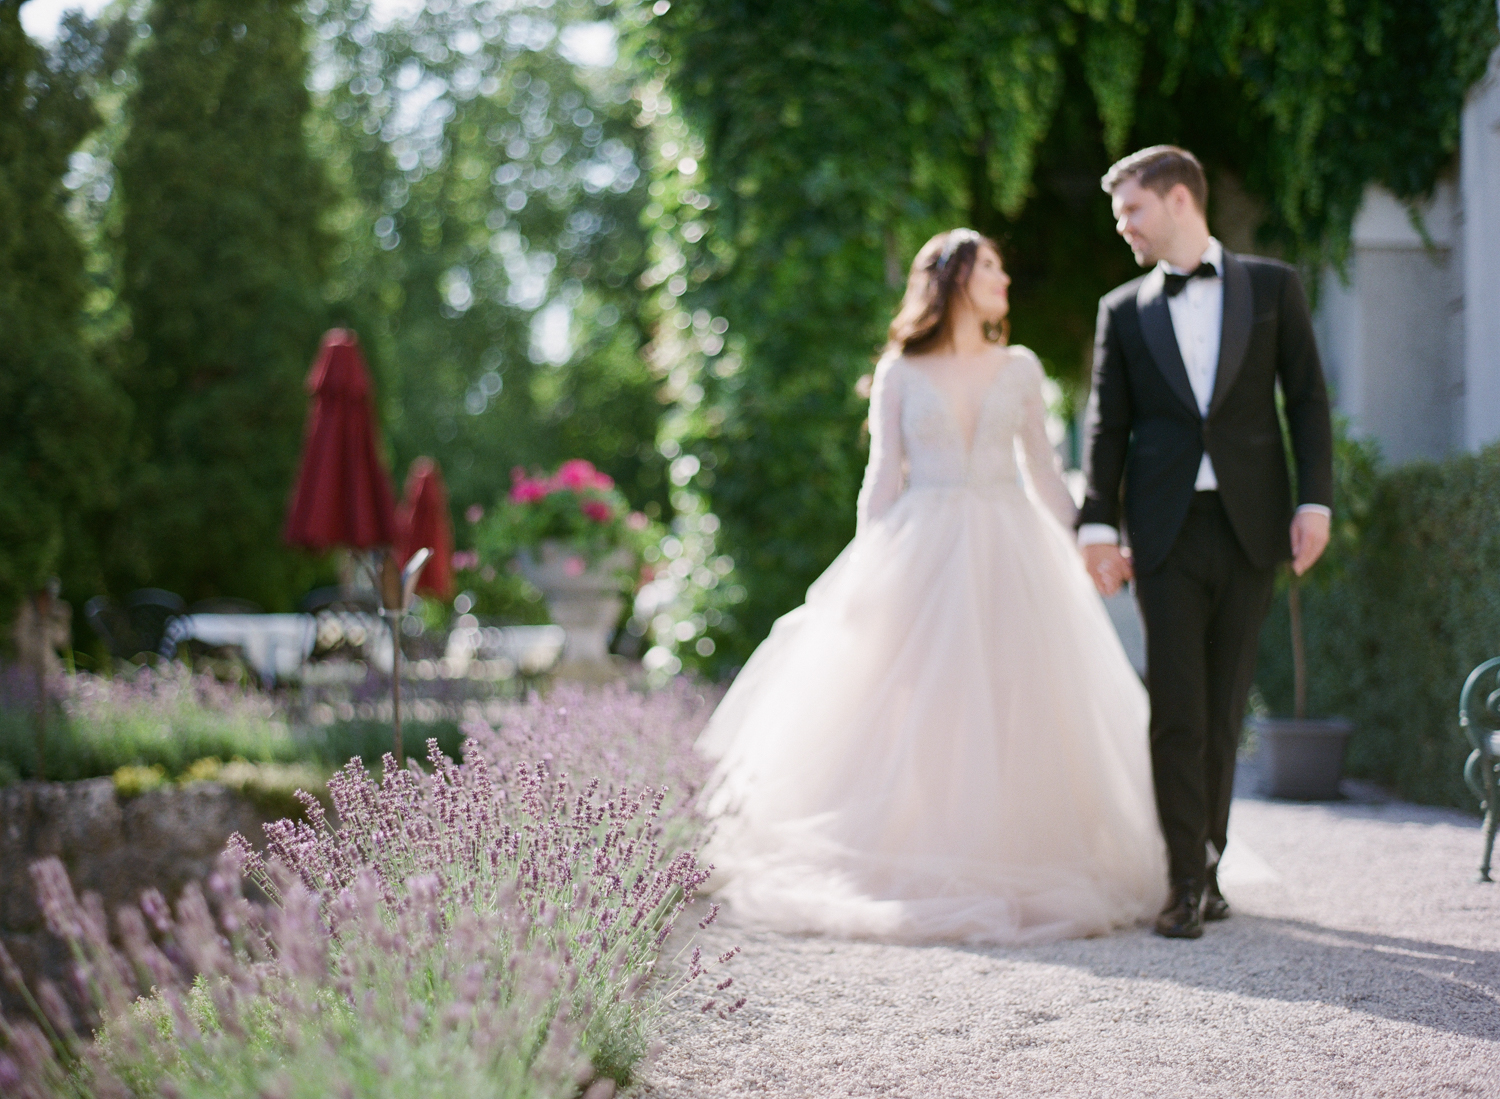 lake_como_wedding_photographer_nikol_bodnarova_188.JPG